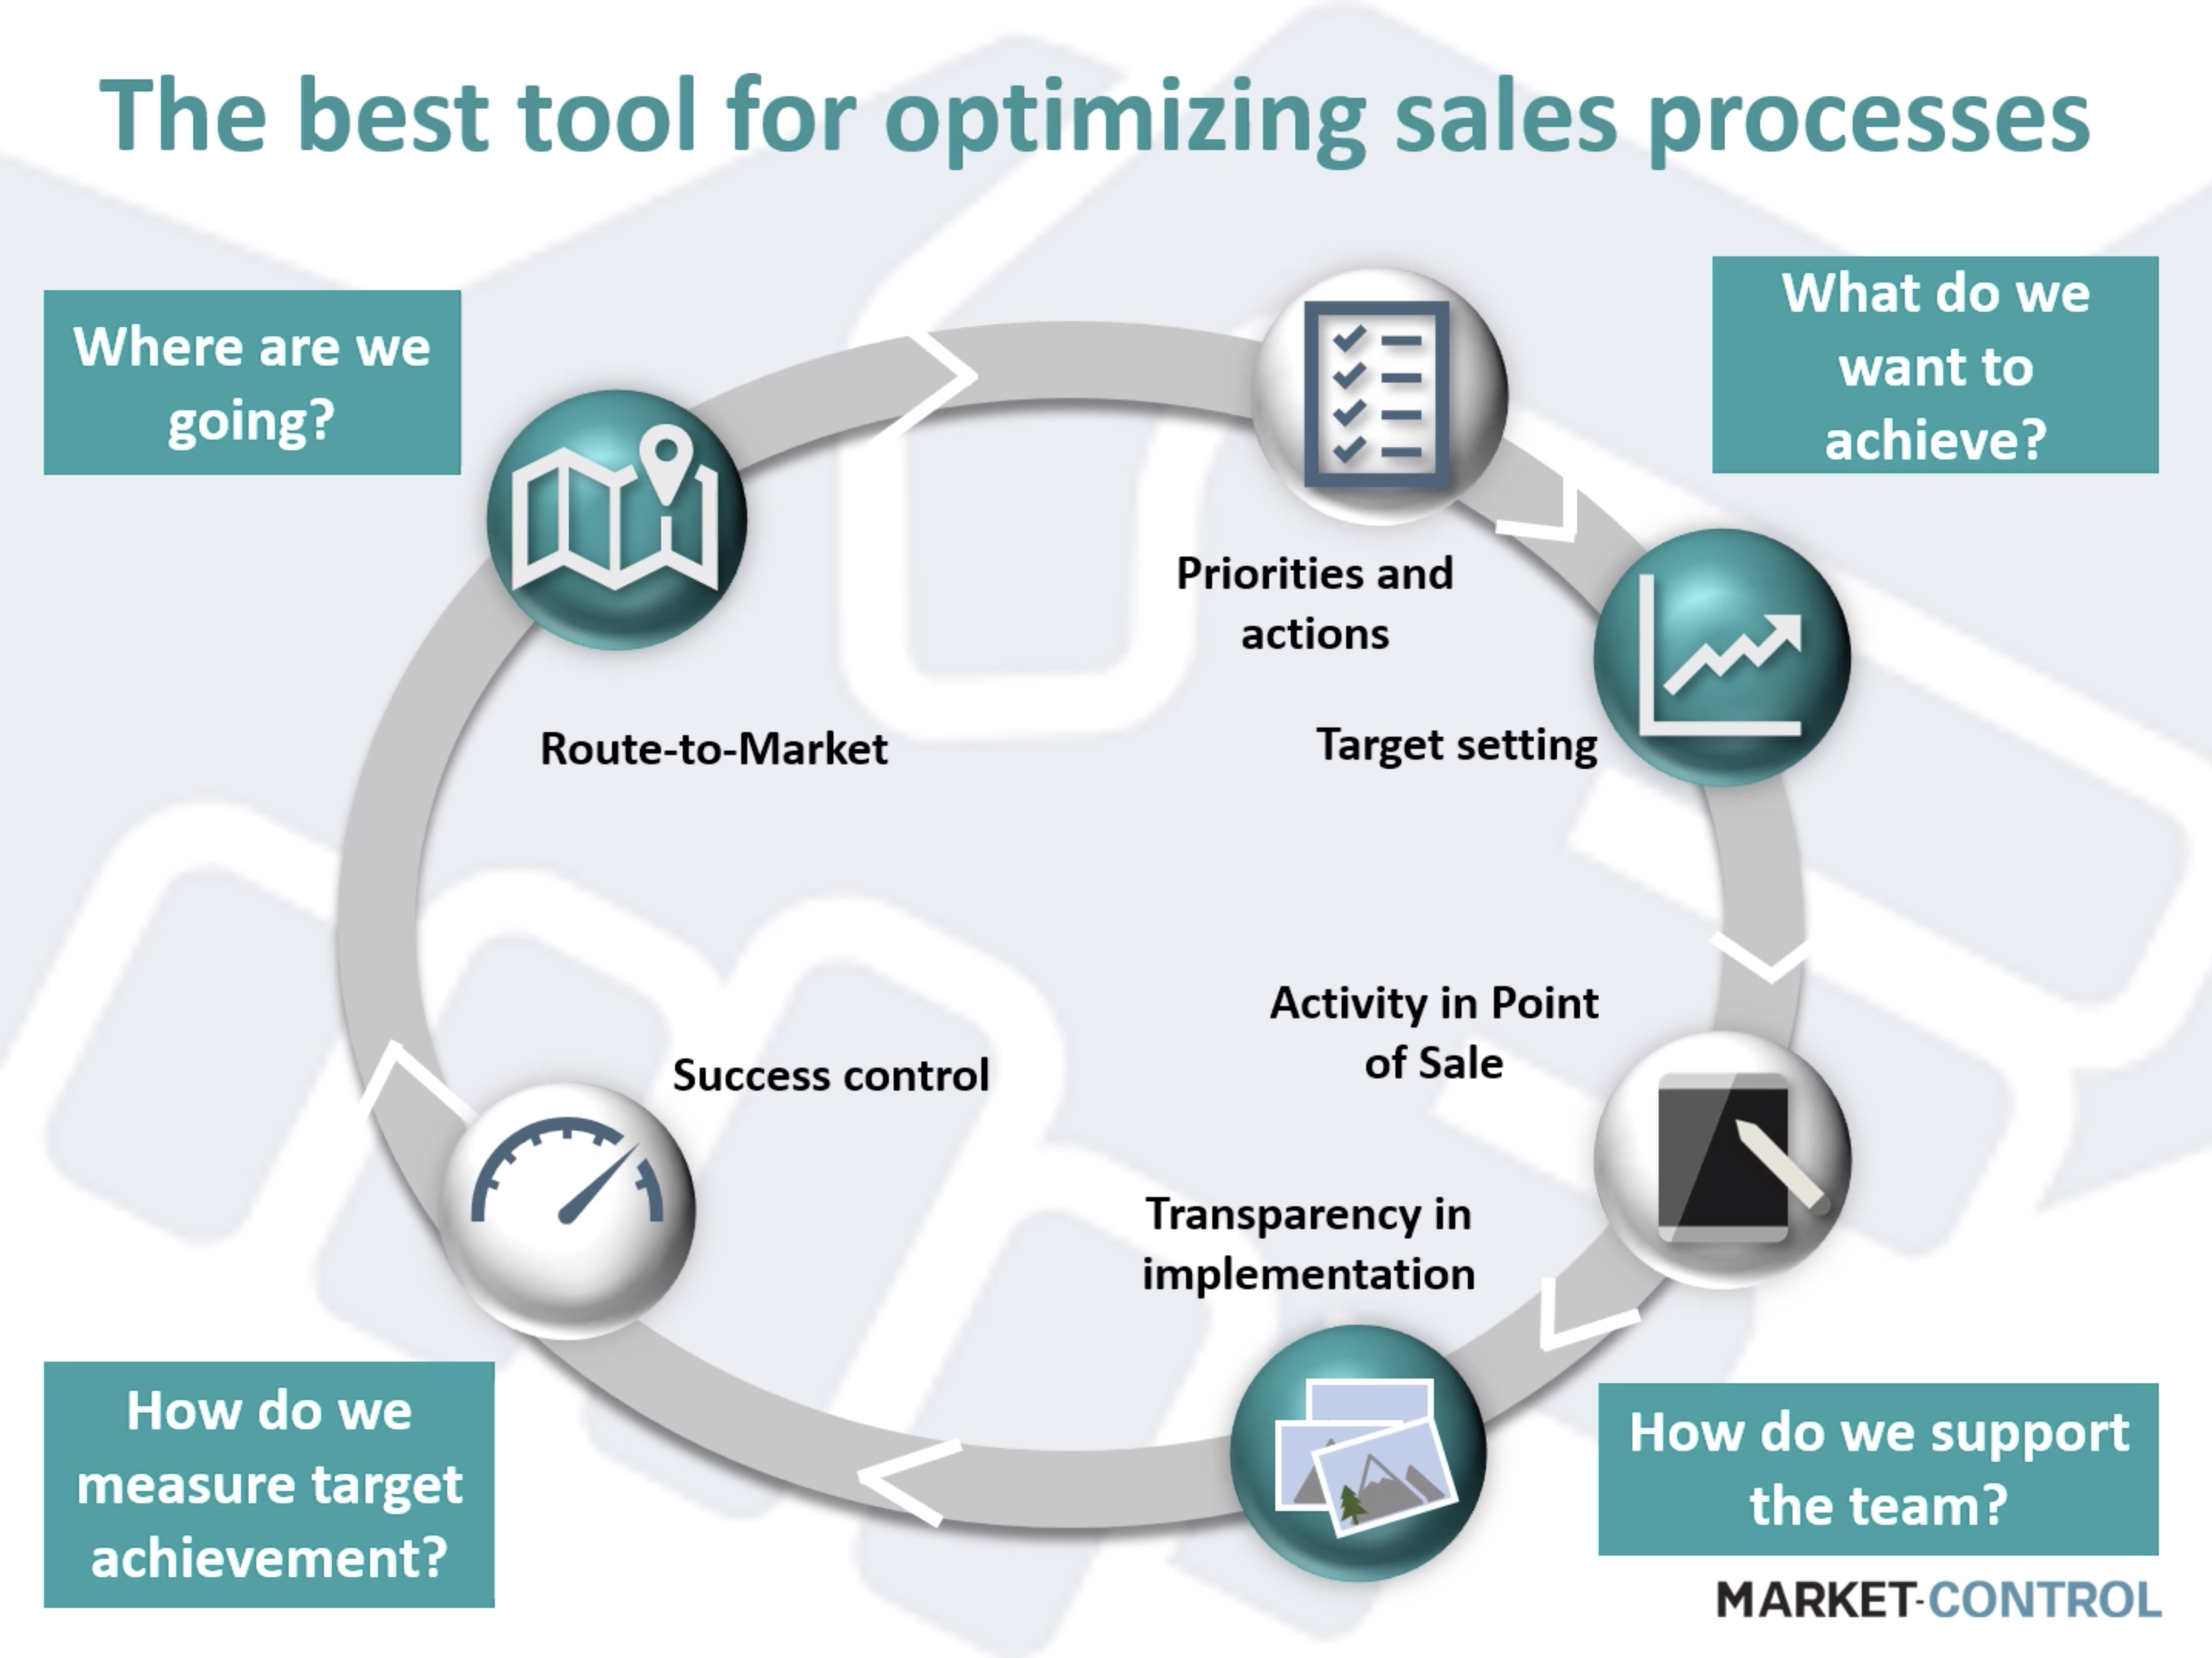 The best tool for optimizing sales processes